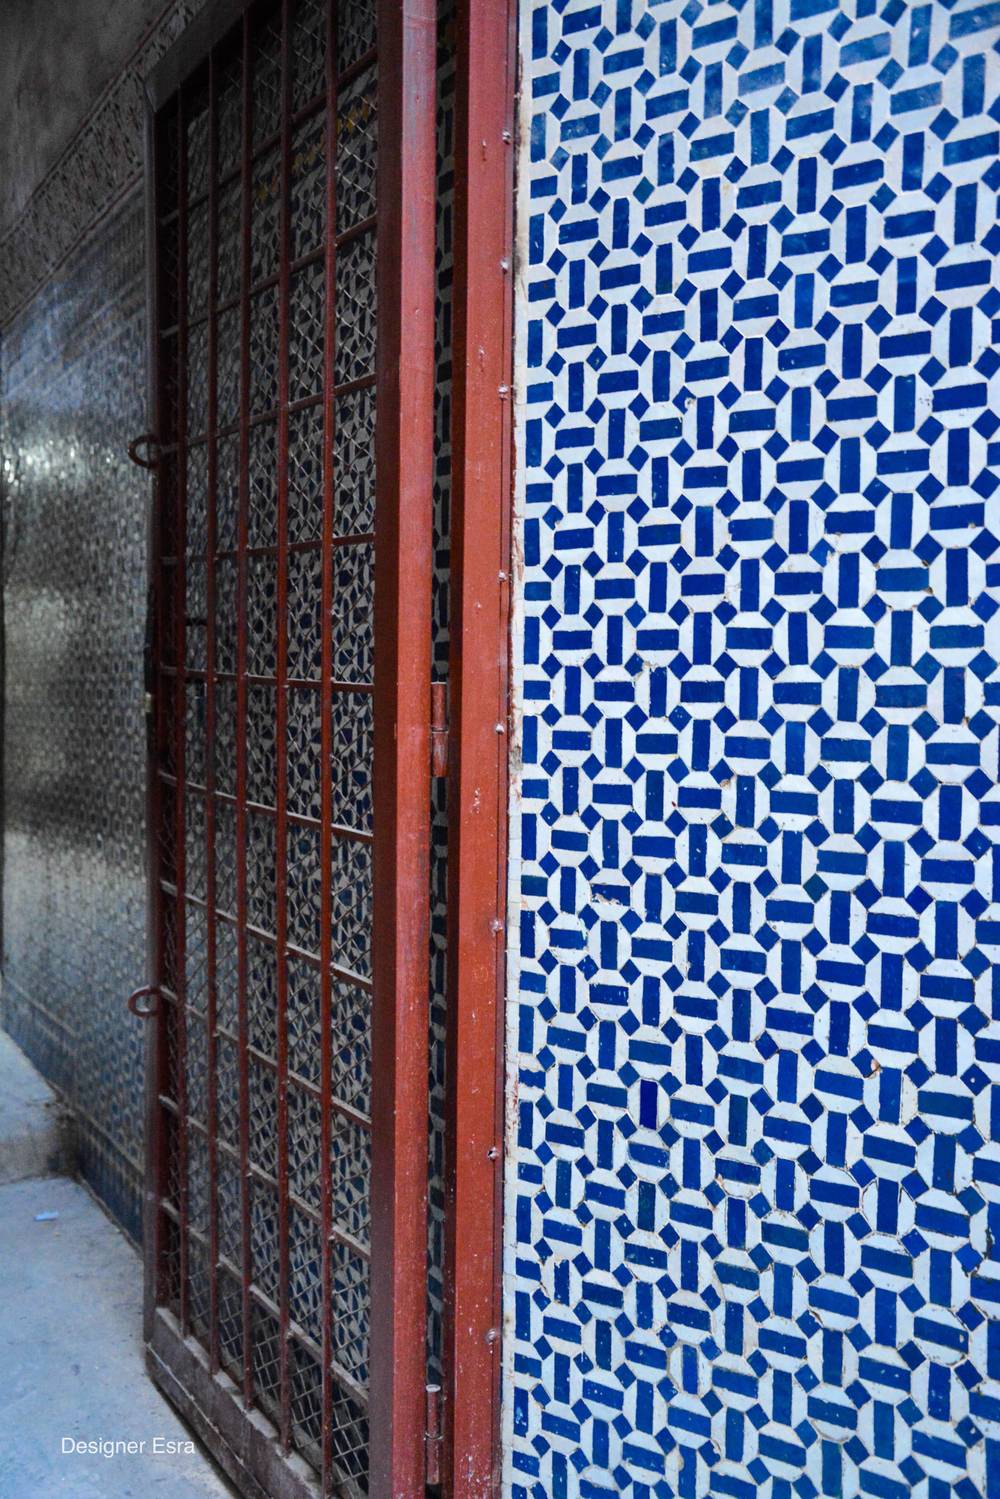 Patterns everywhere in Fez